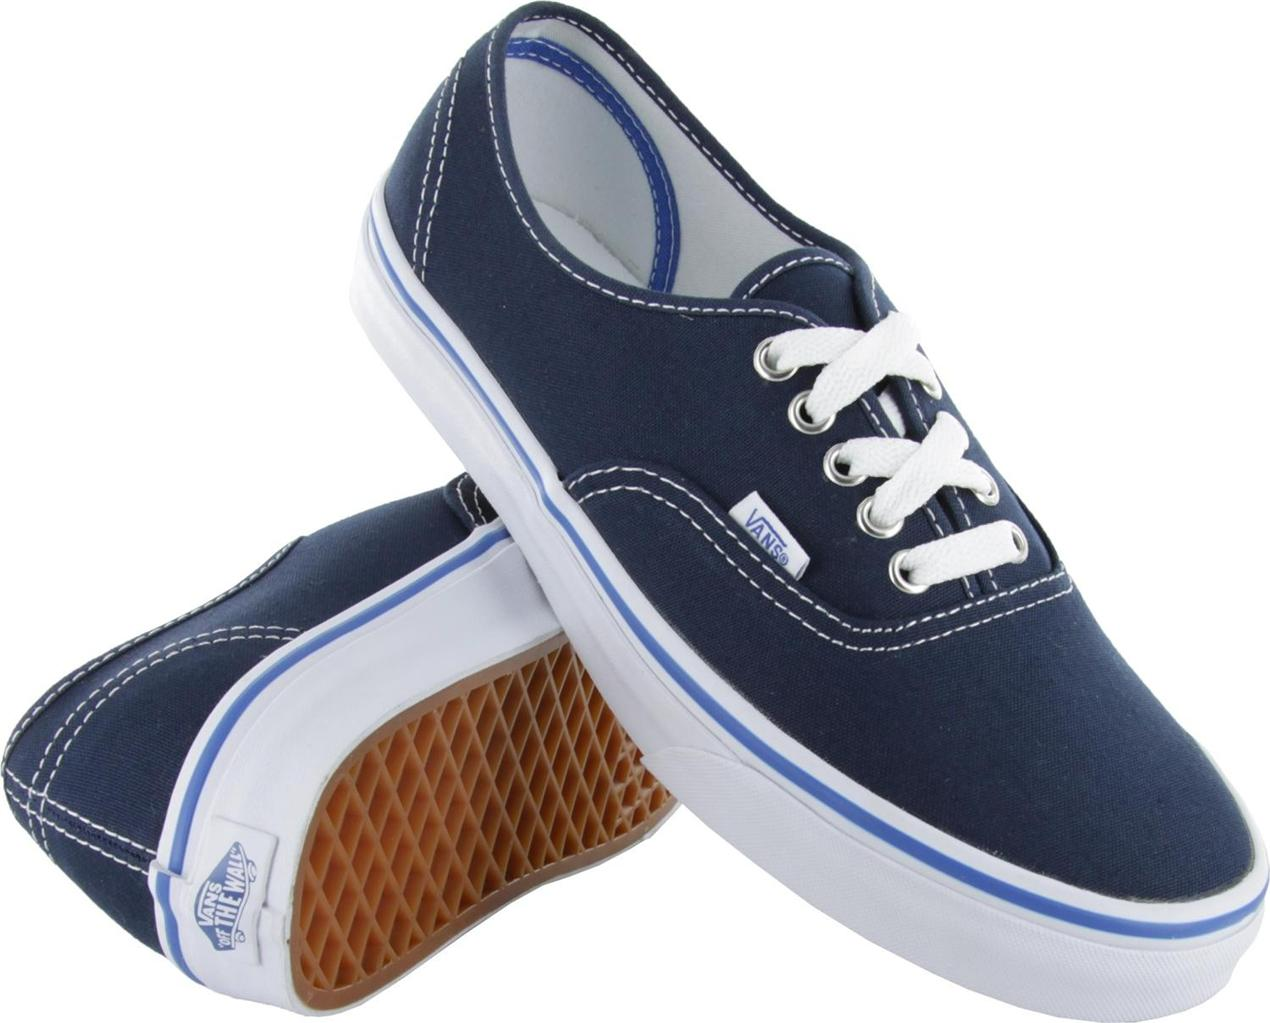 dress blue vans authentic